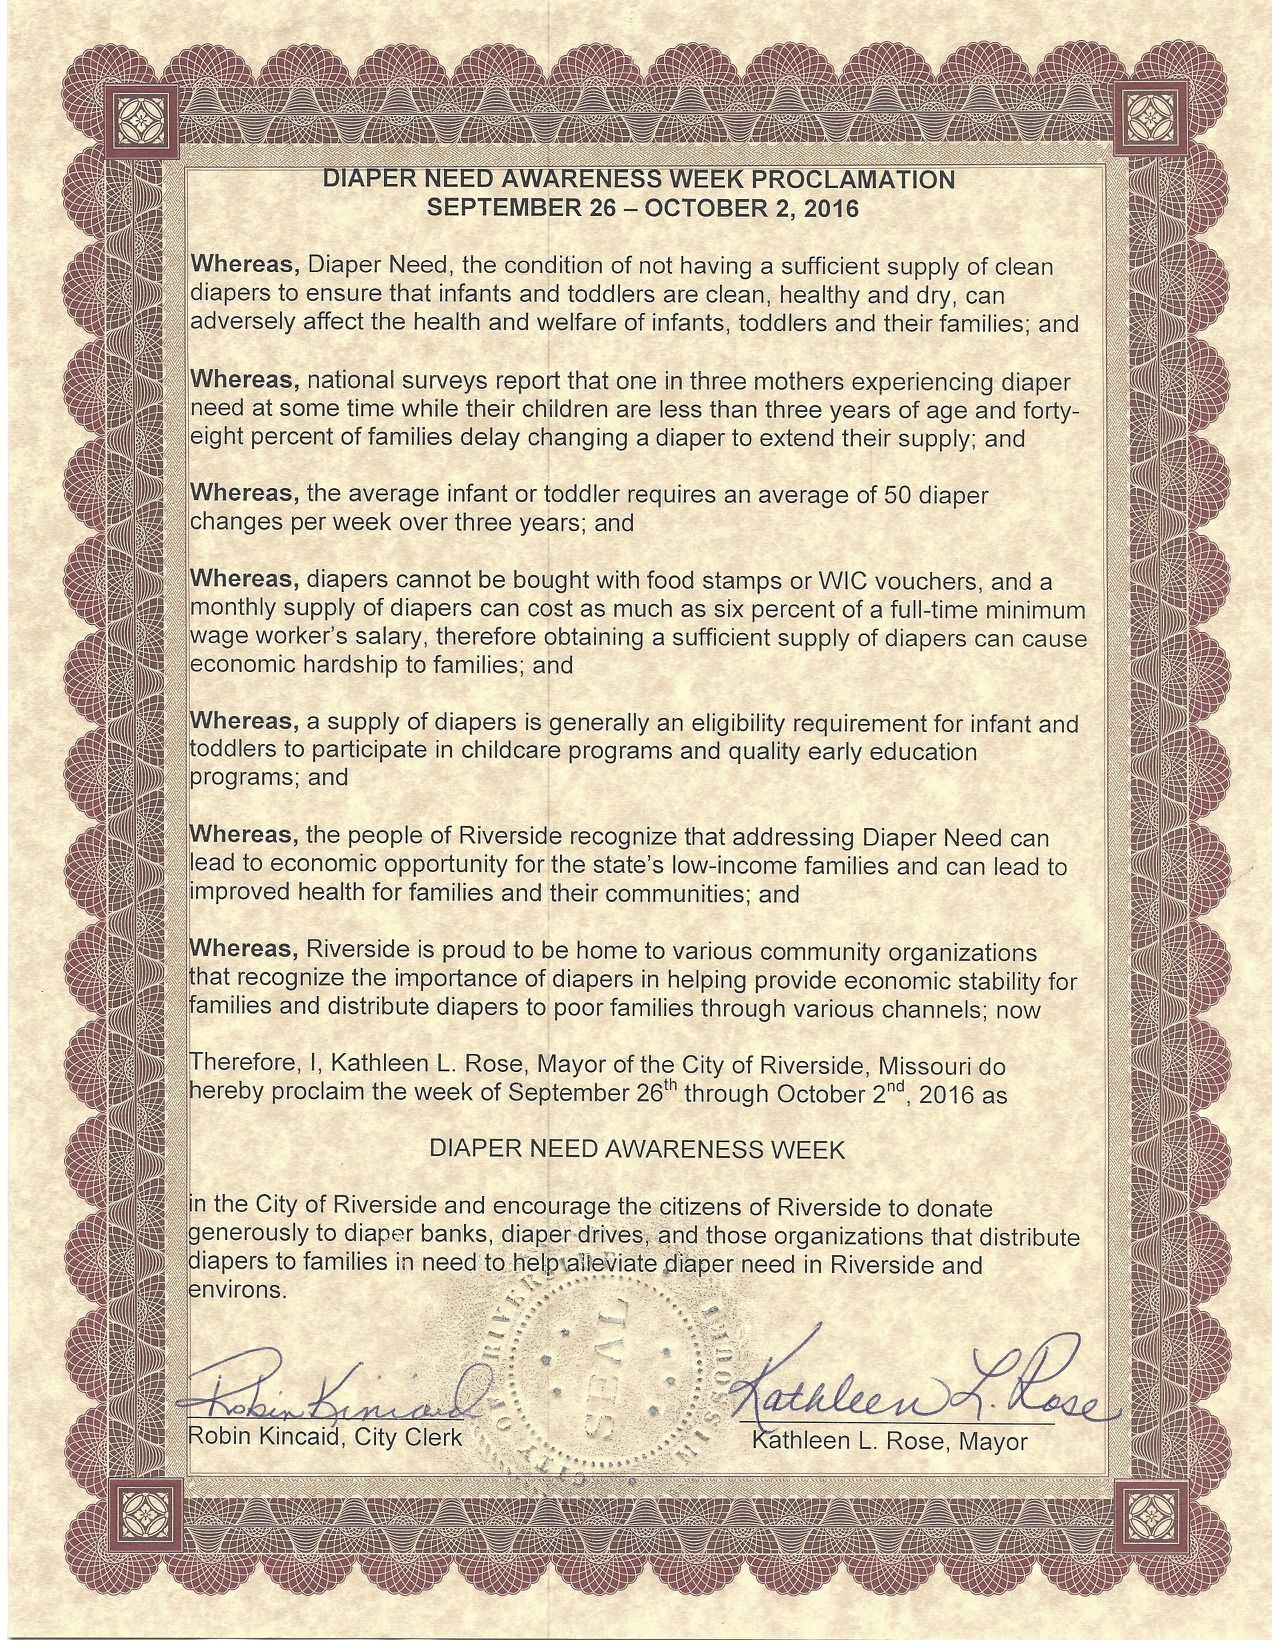 RIVERSIDE, MO - Mayoral proclamation recognizing Diaper Need Awareness Week (Sep. 26-Oct. 2, 2016) #DiaperNeed Diaperneed.org